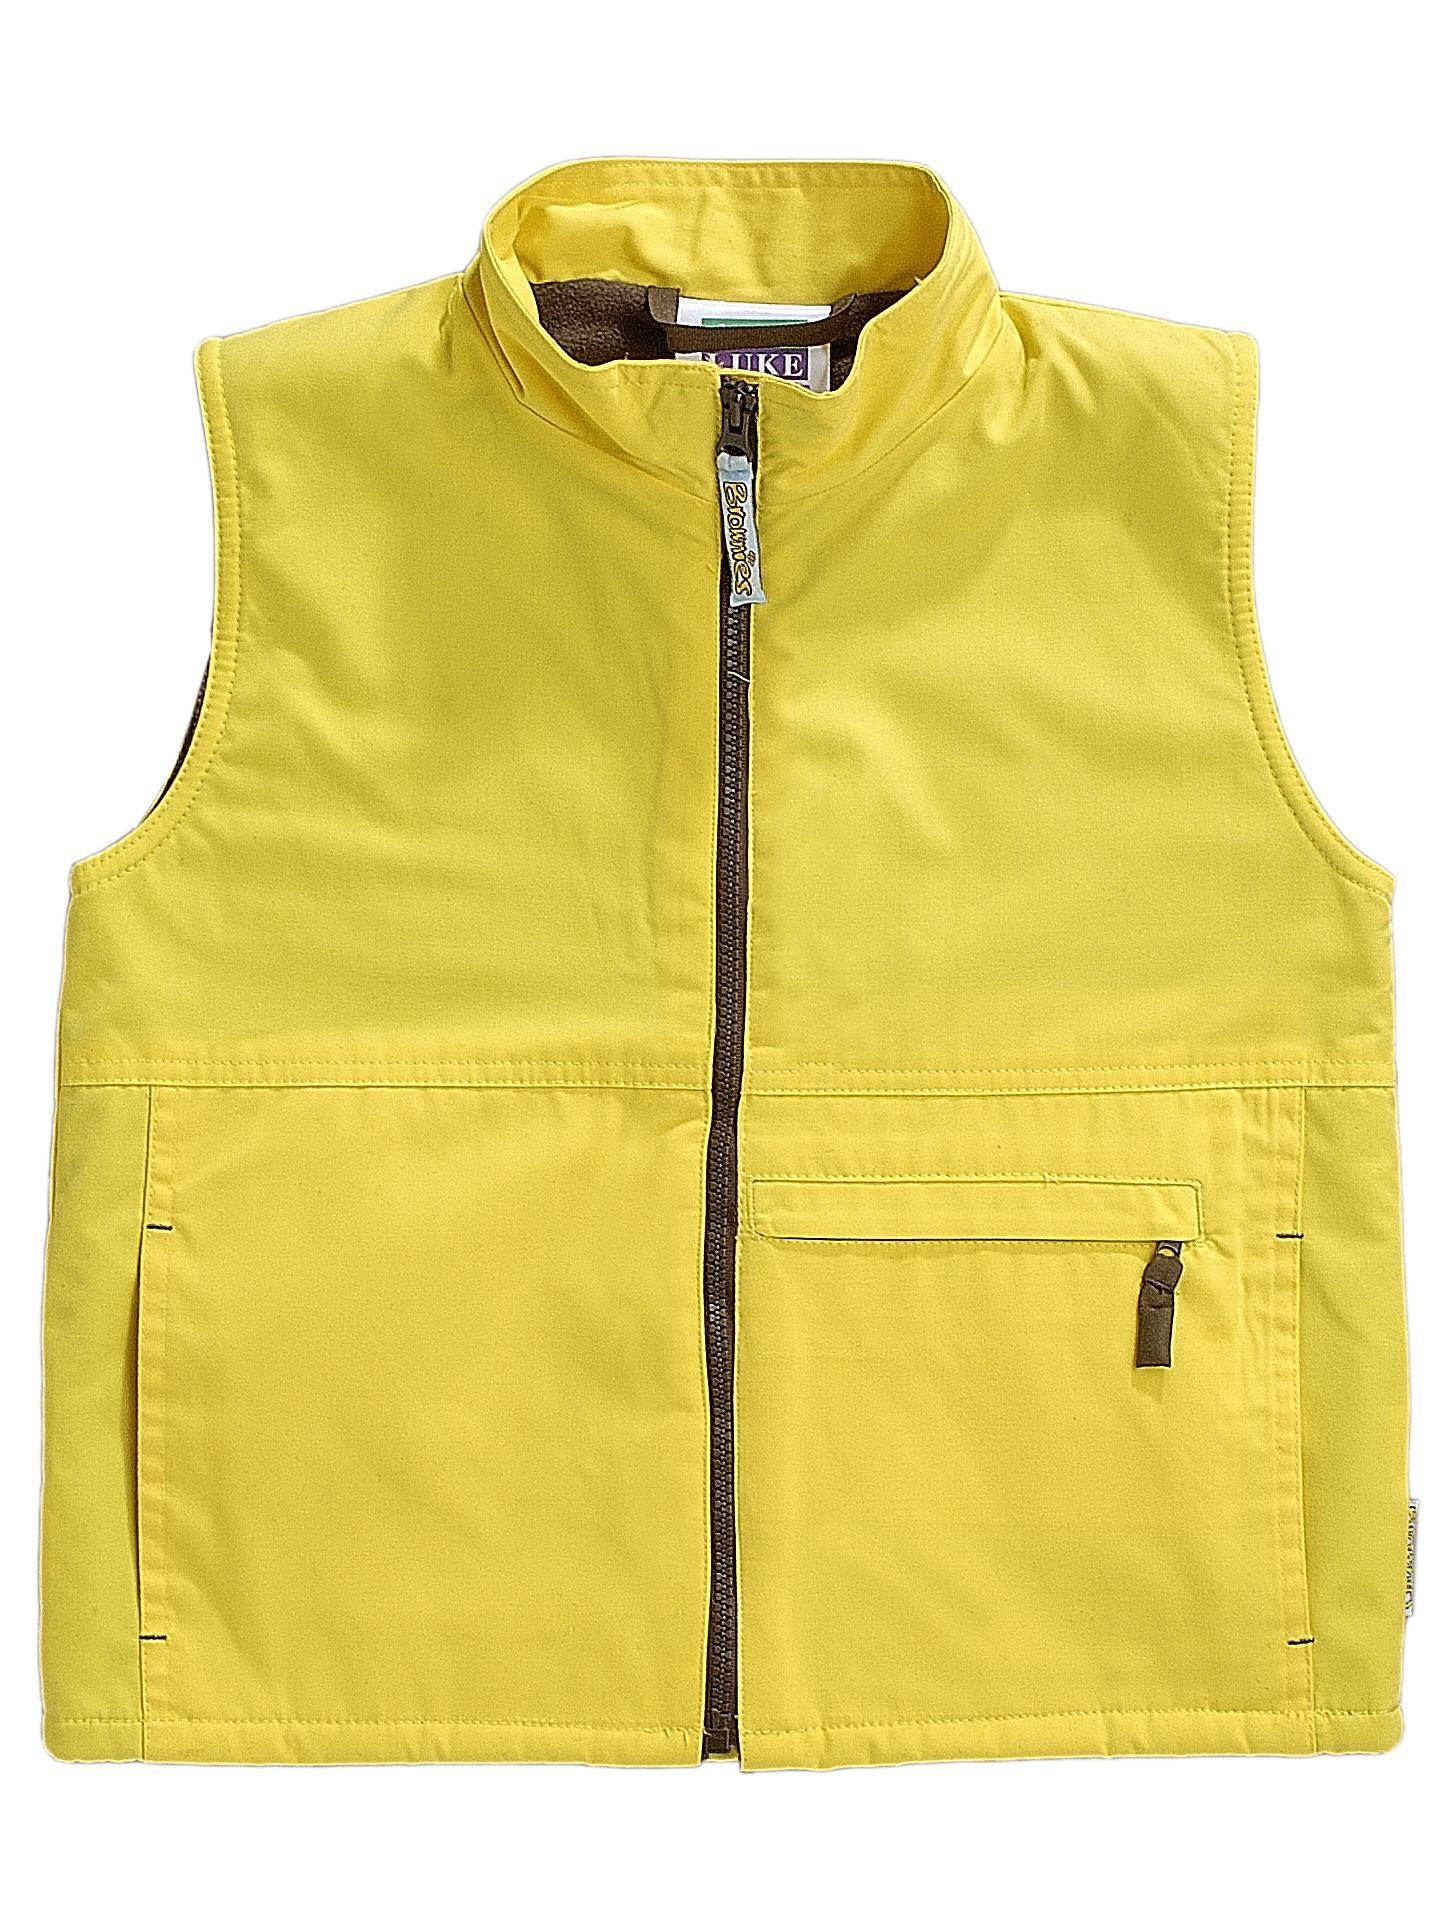 Brownies Brownies Uniform Gilet, Yellow